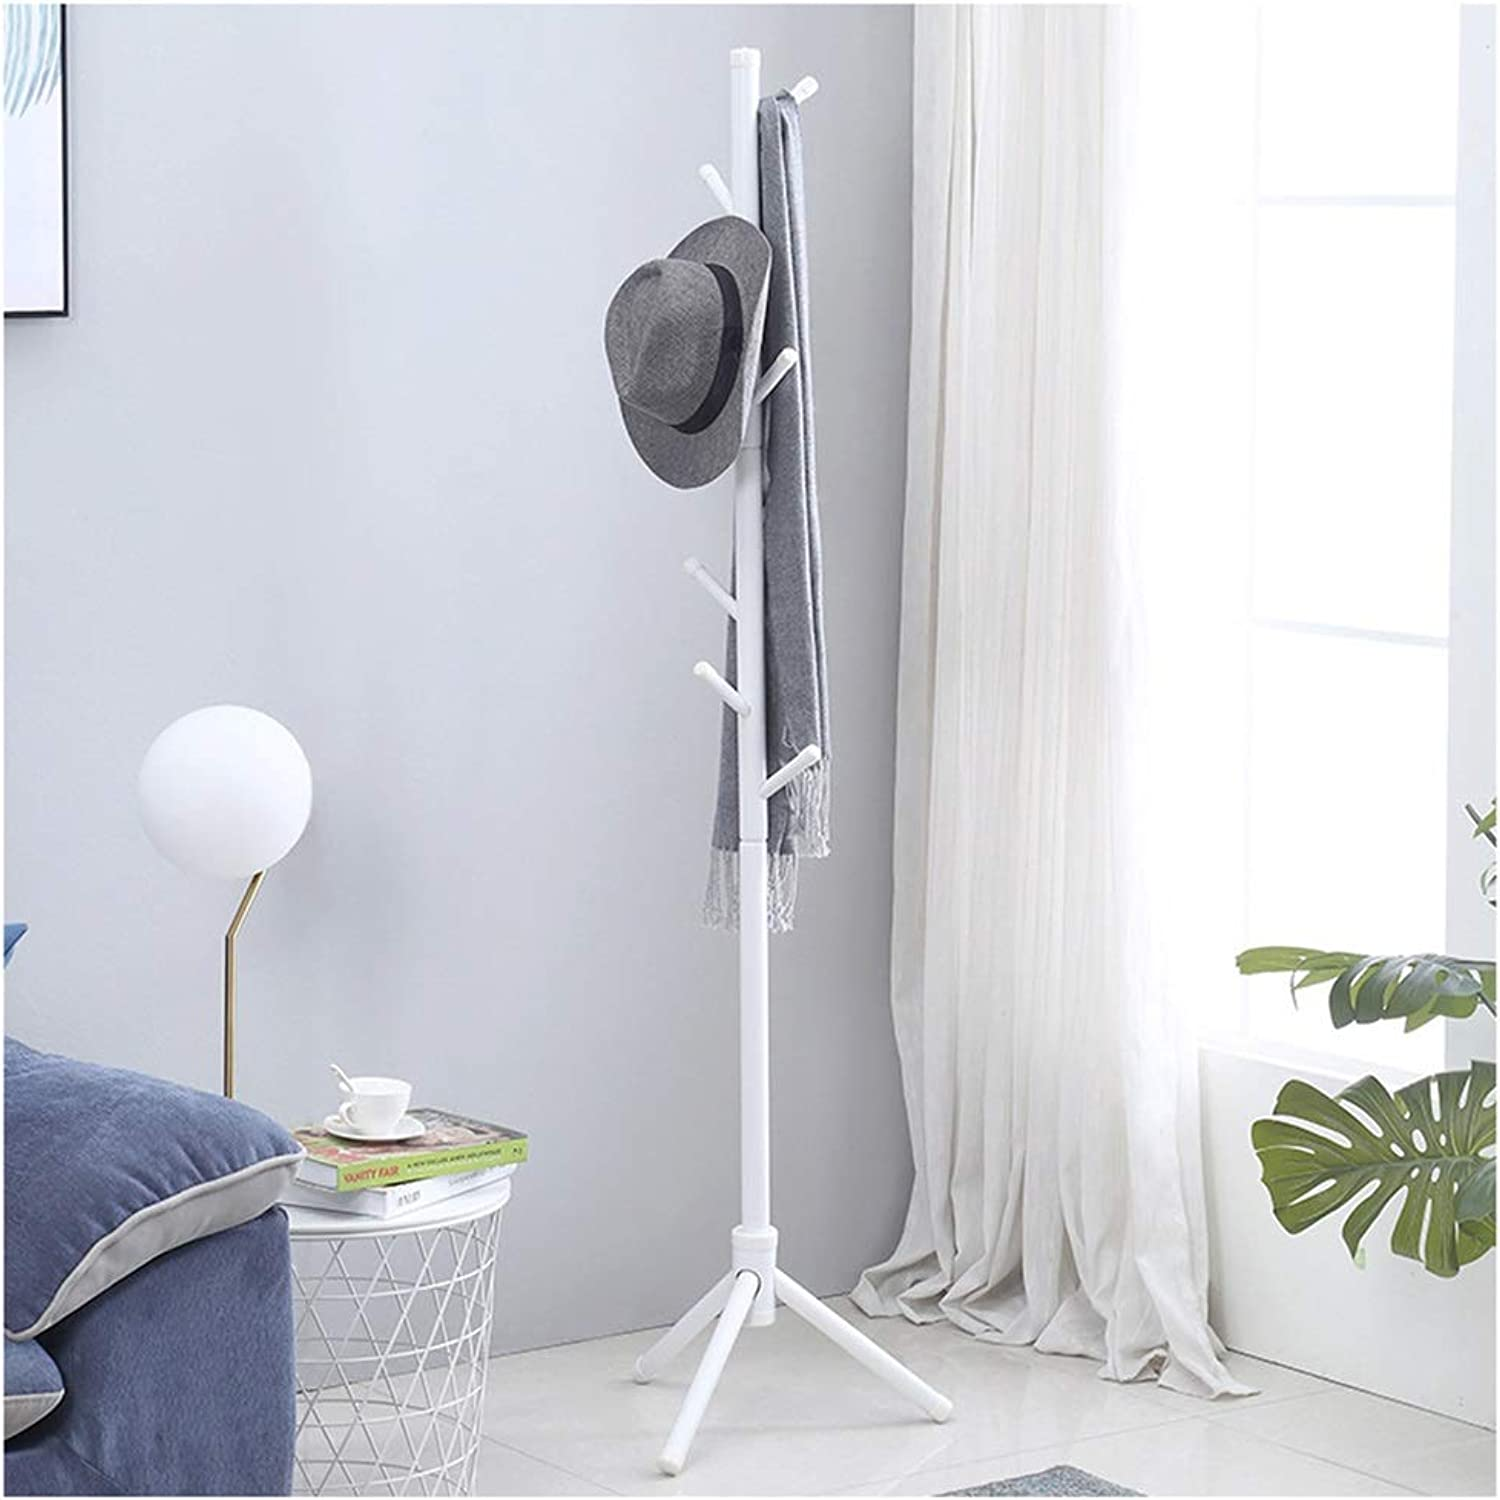 Standing Coat Racks Standing Coat Racks Wooden Coat Rack Stand 8 Hooks Clothes Stand Tree Stylish Wooden Hat Coat Rail Stand Rack Clothes Jacket Storage -0223 (color   White)